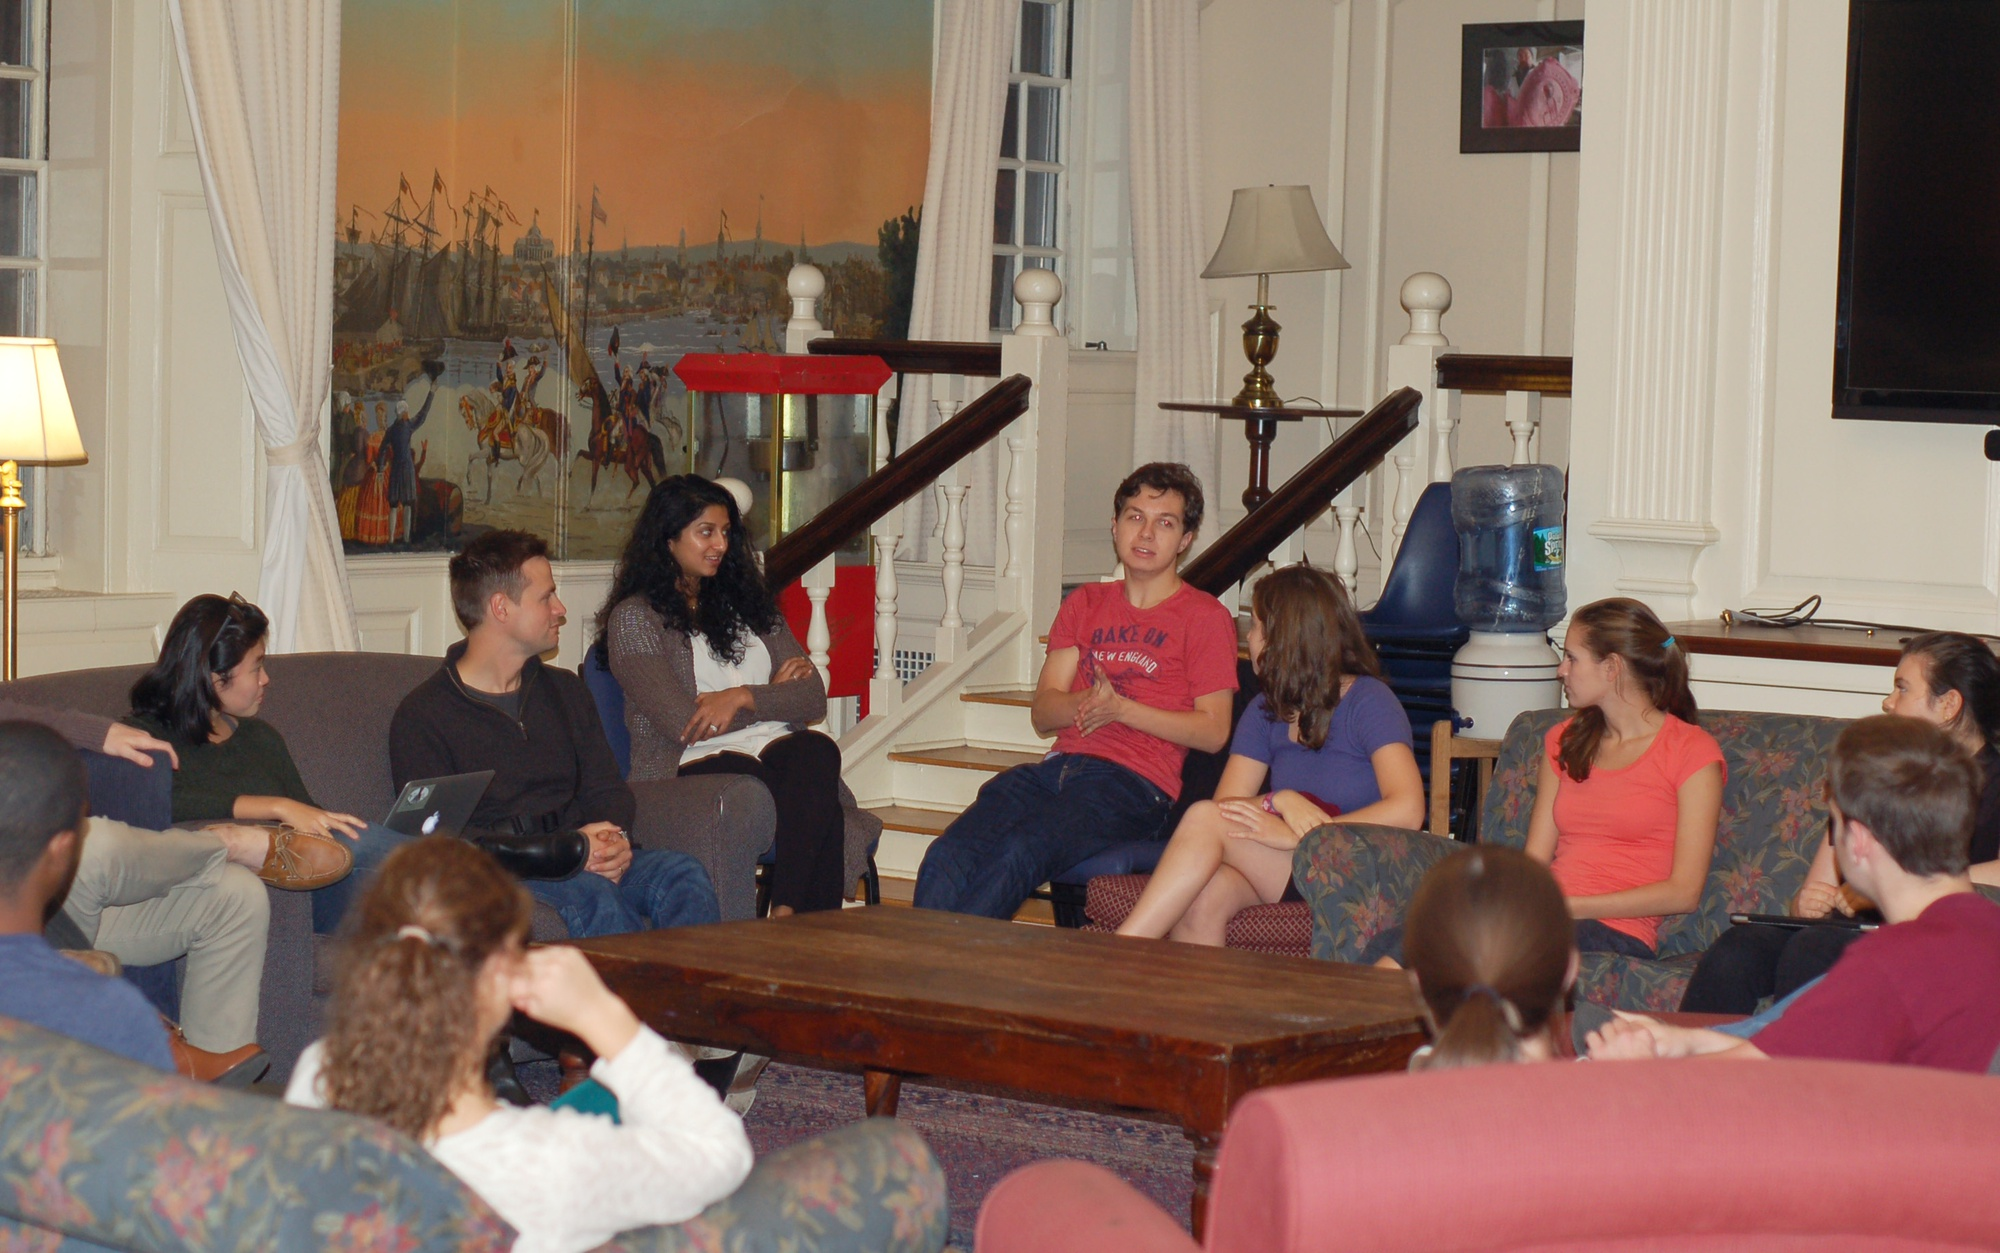 """The Undergraduate Harvard Political Union hosts a discussion """"Sexual Assault & Rape Culture"""" in the Lowell House Junior Common Room Thursday evening in which students voiced concerns and recommendations to improve communications and university response moving forward."""